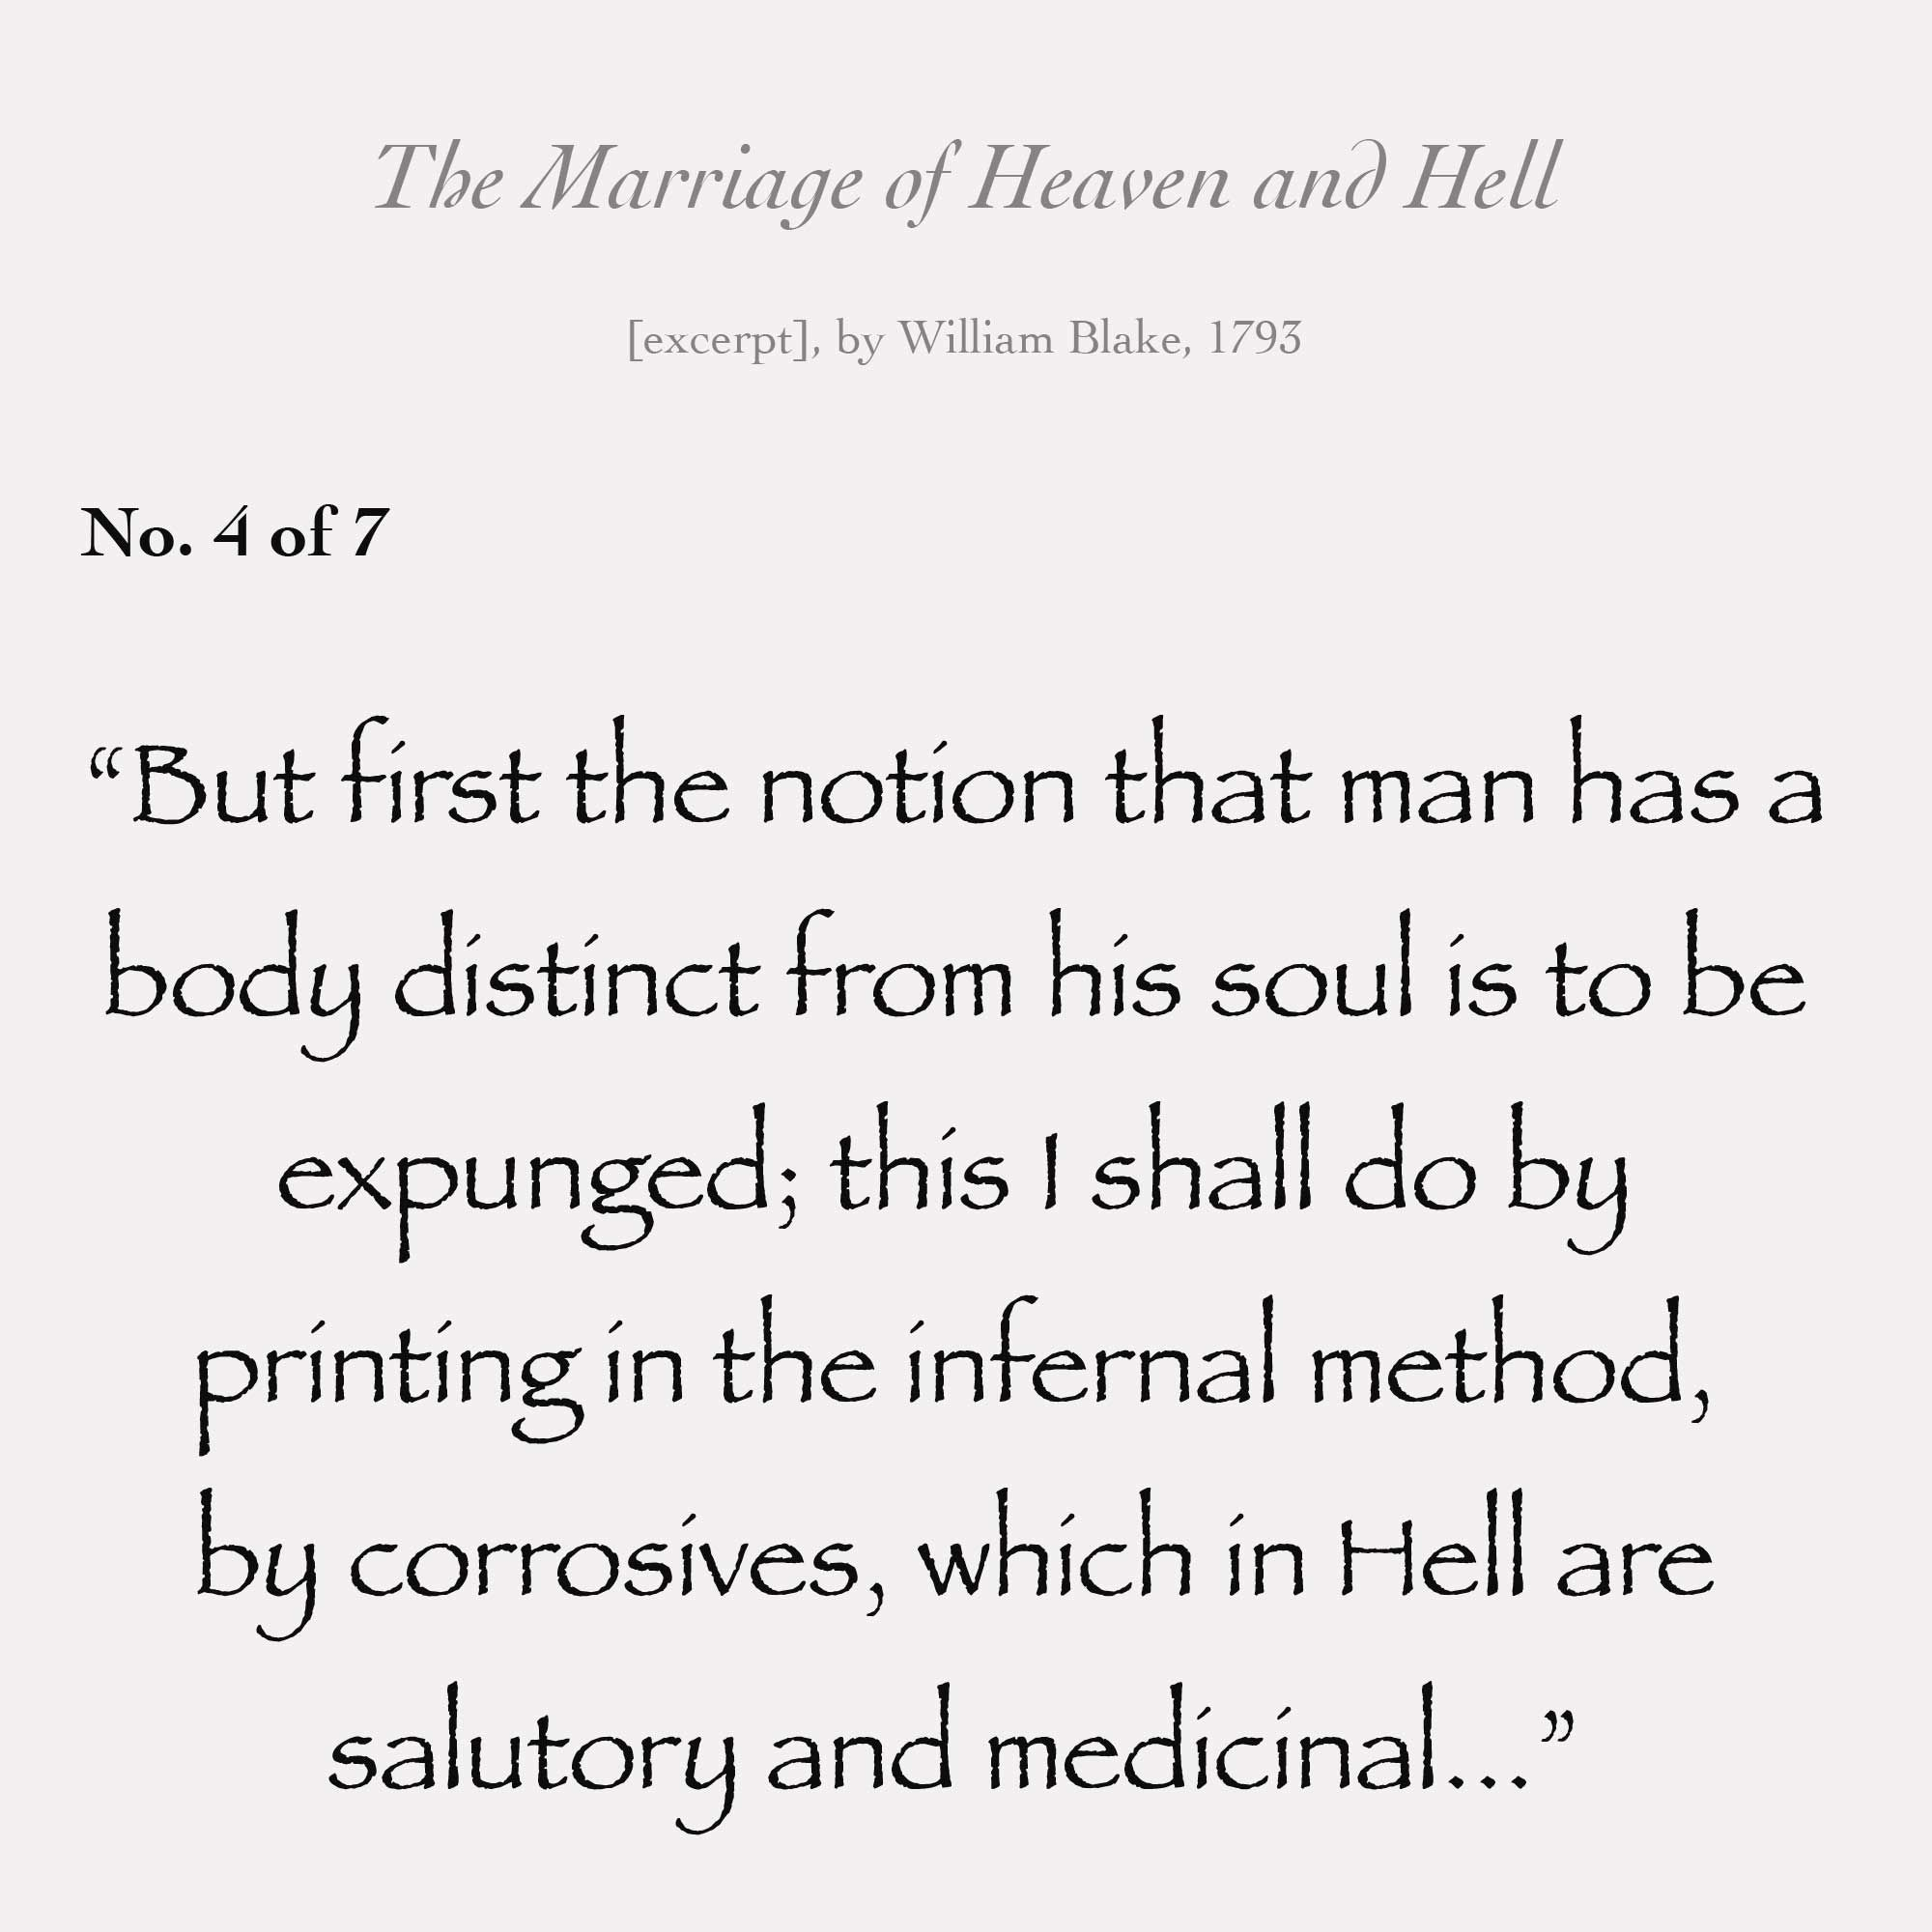 """But first the notion that man has a body distinct from his soul is to be expunged; this I shall do by printing in the infernal method, by corrosives, which in Hell are salutory and medicinal..."""